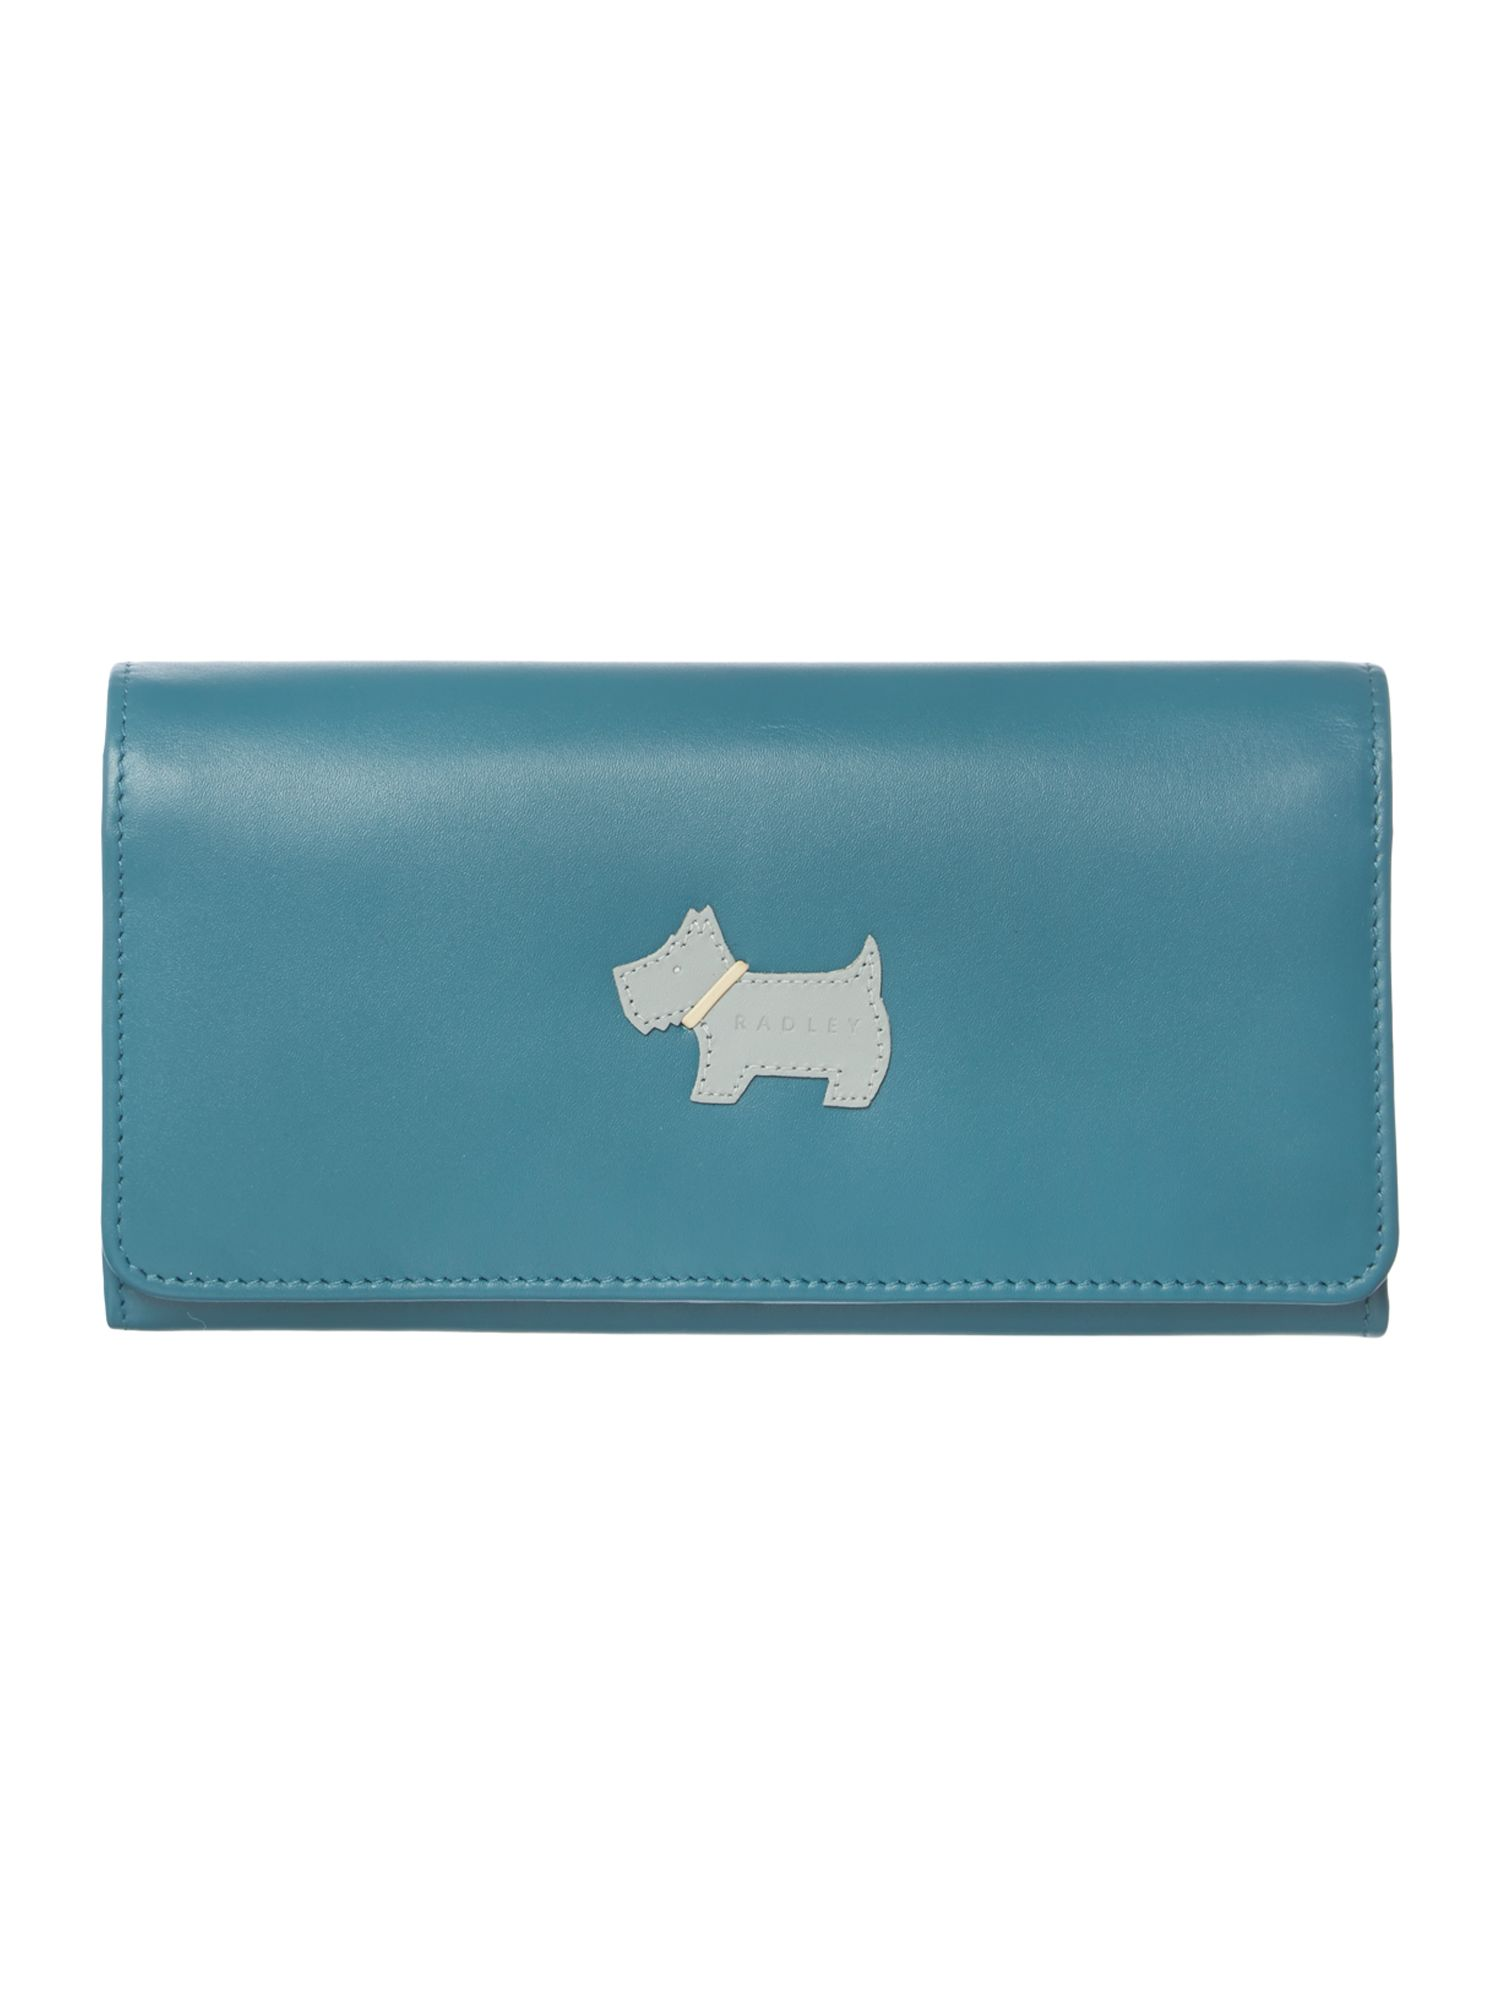 Heritage dog blue large flapover matinee purse